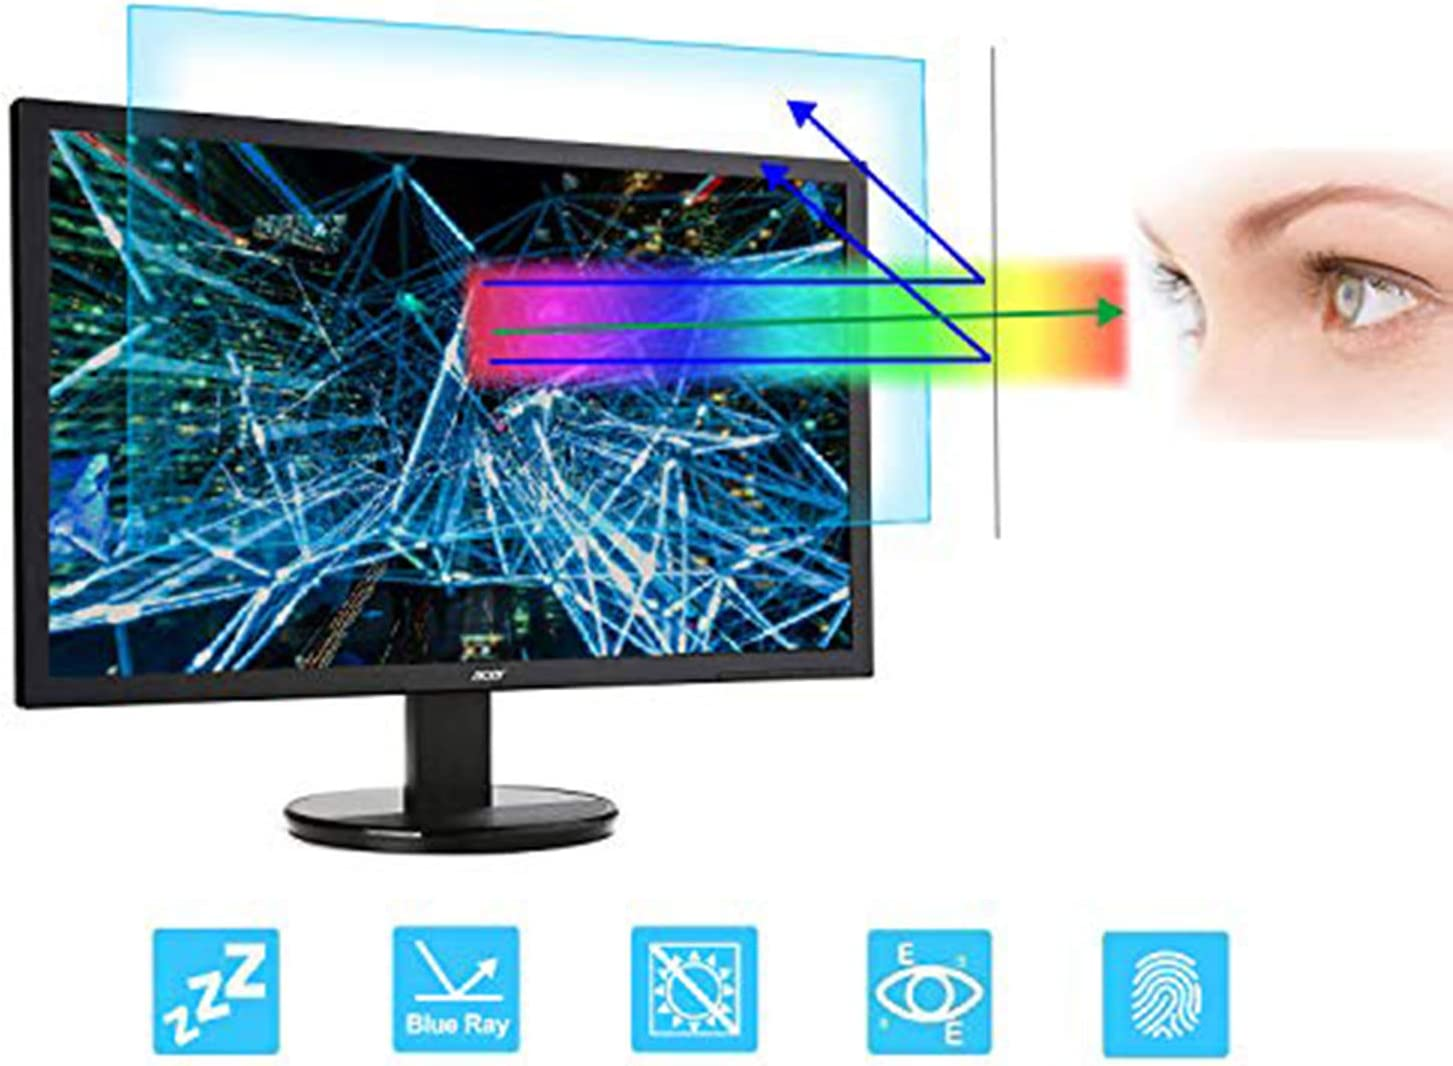 24 Inch Monitor Screen Protector -Blue Light Filter, FORITO Eye Protection Blue Light Blocking Anti Glare Screen Protector Compatible 24 Inch 16: 9 Desktop Monitor